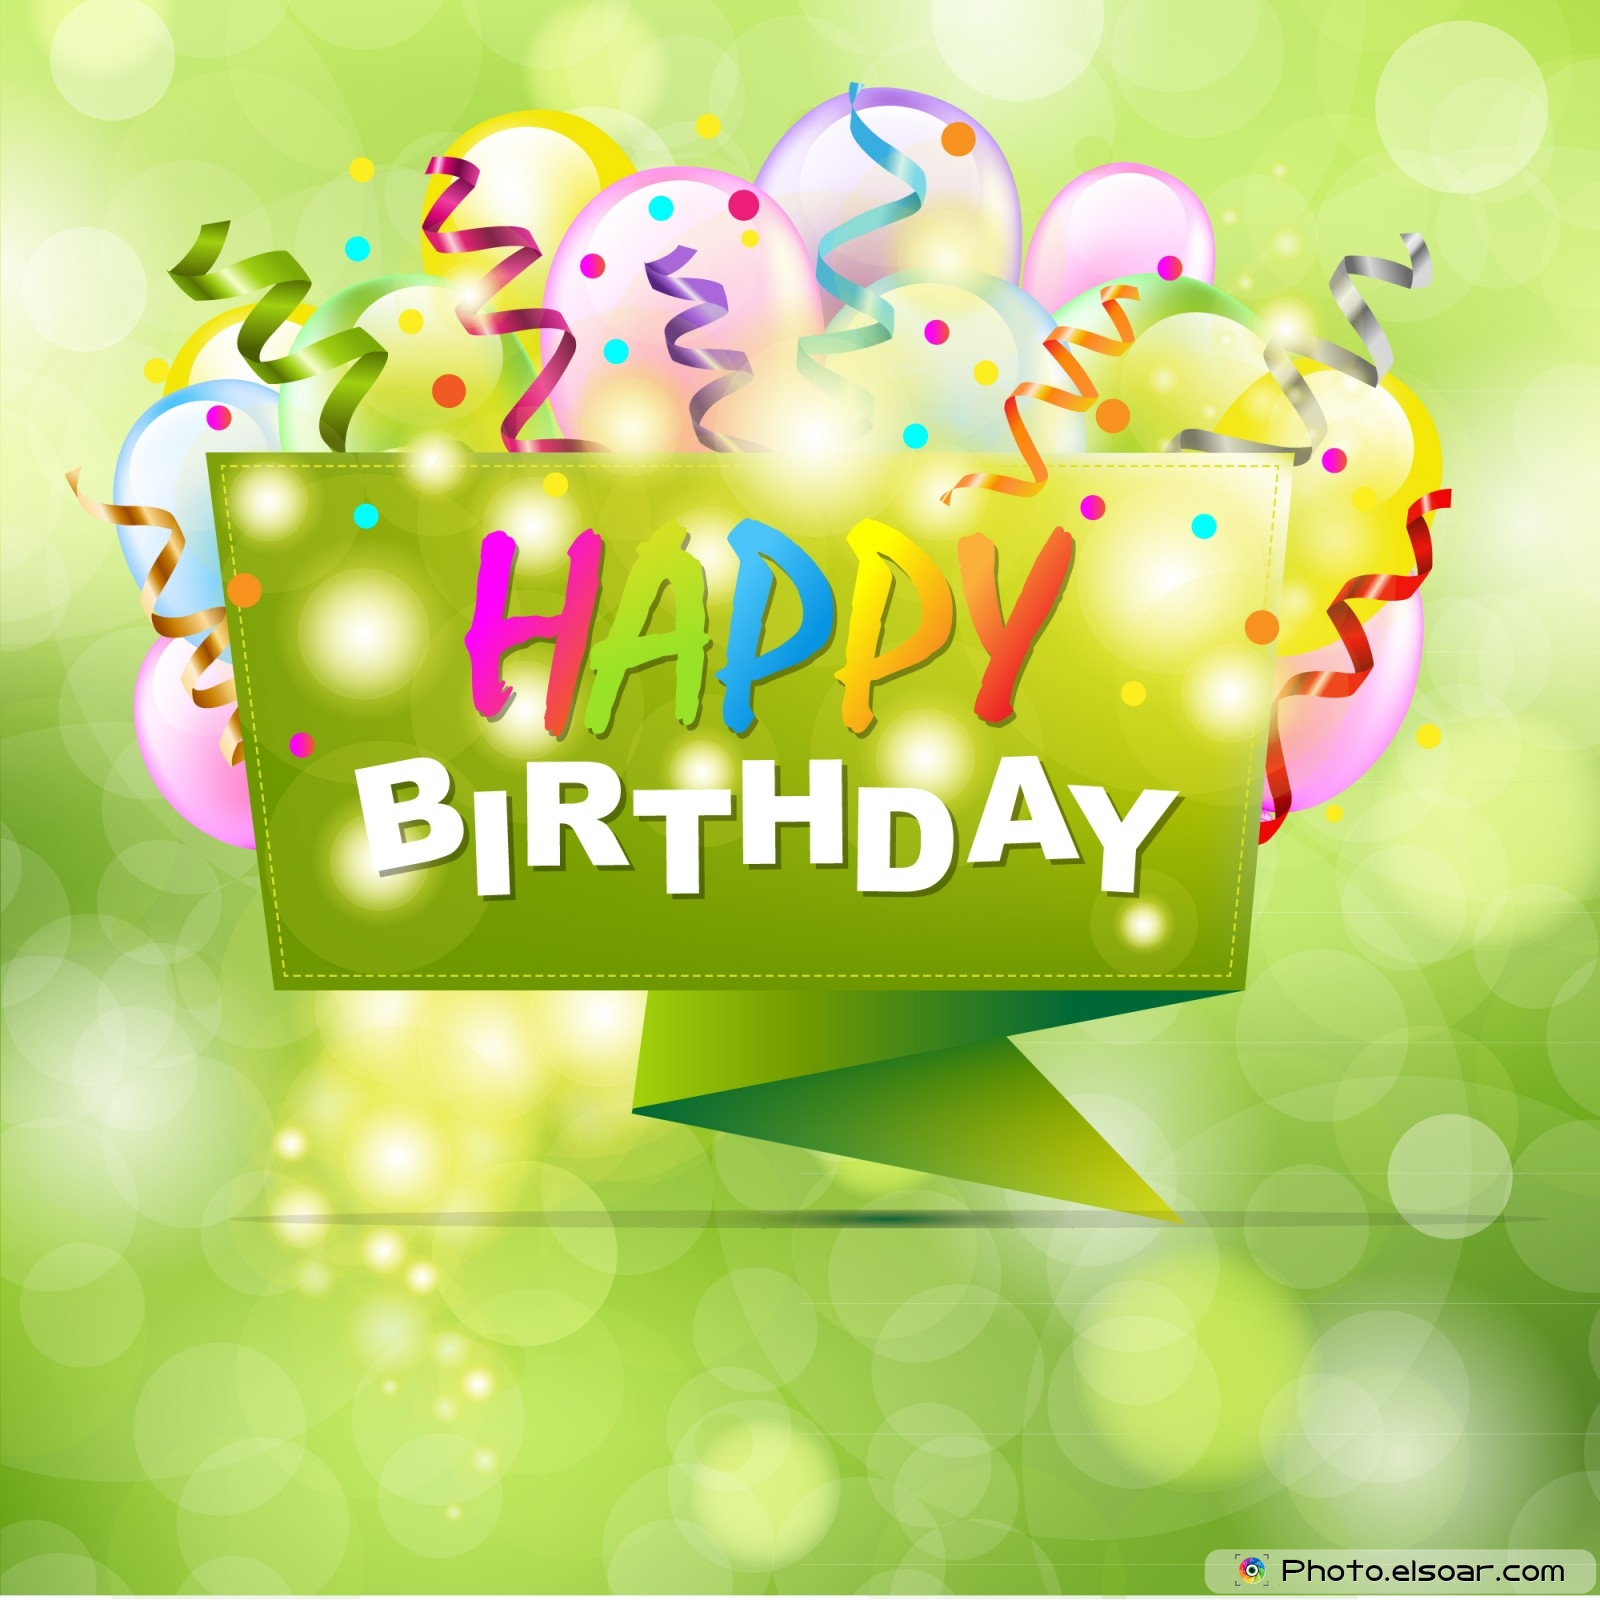 Happy Birthday With Origami and Bokeh Quality PPT Backgrounds